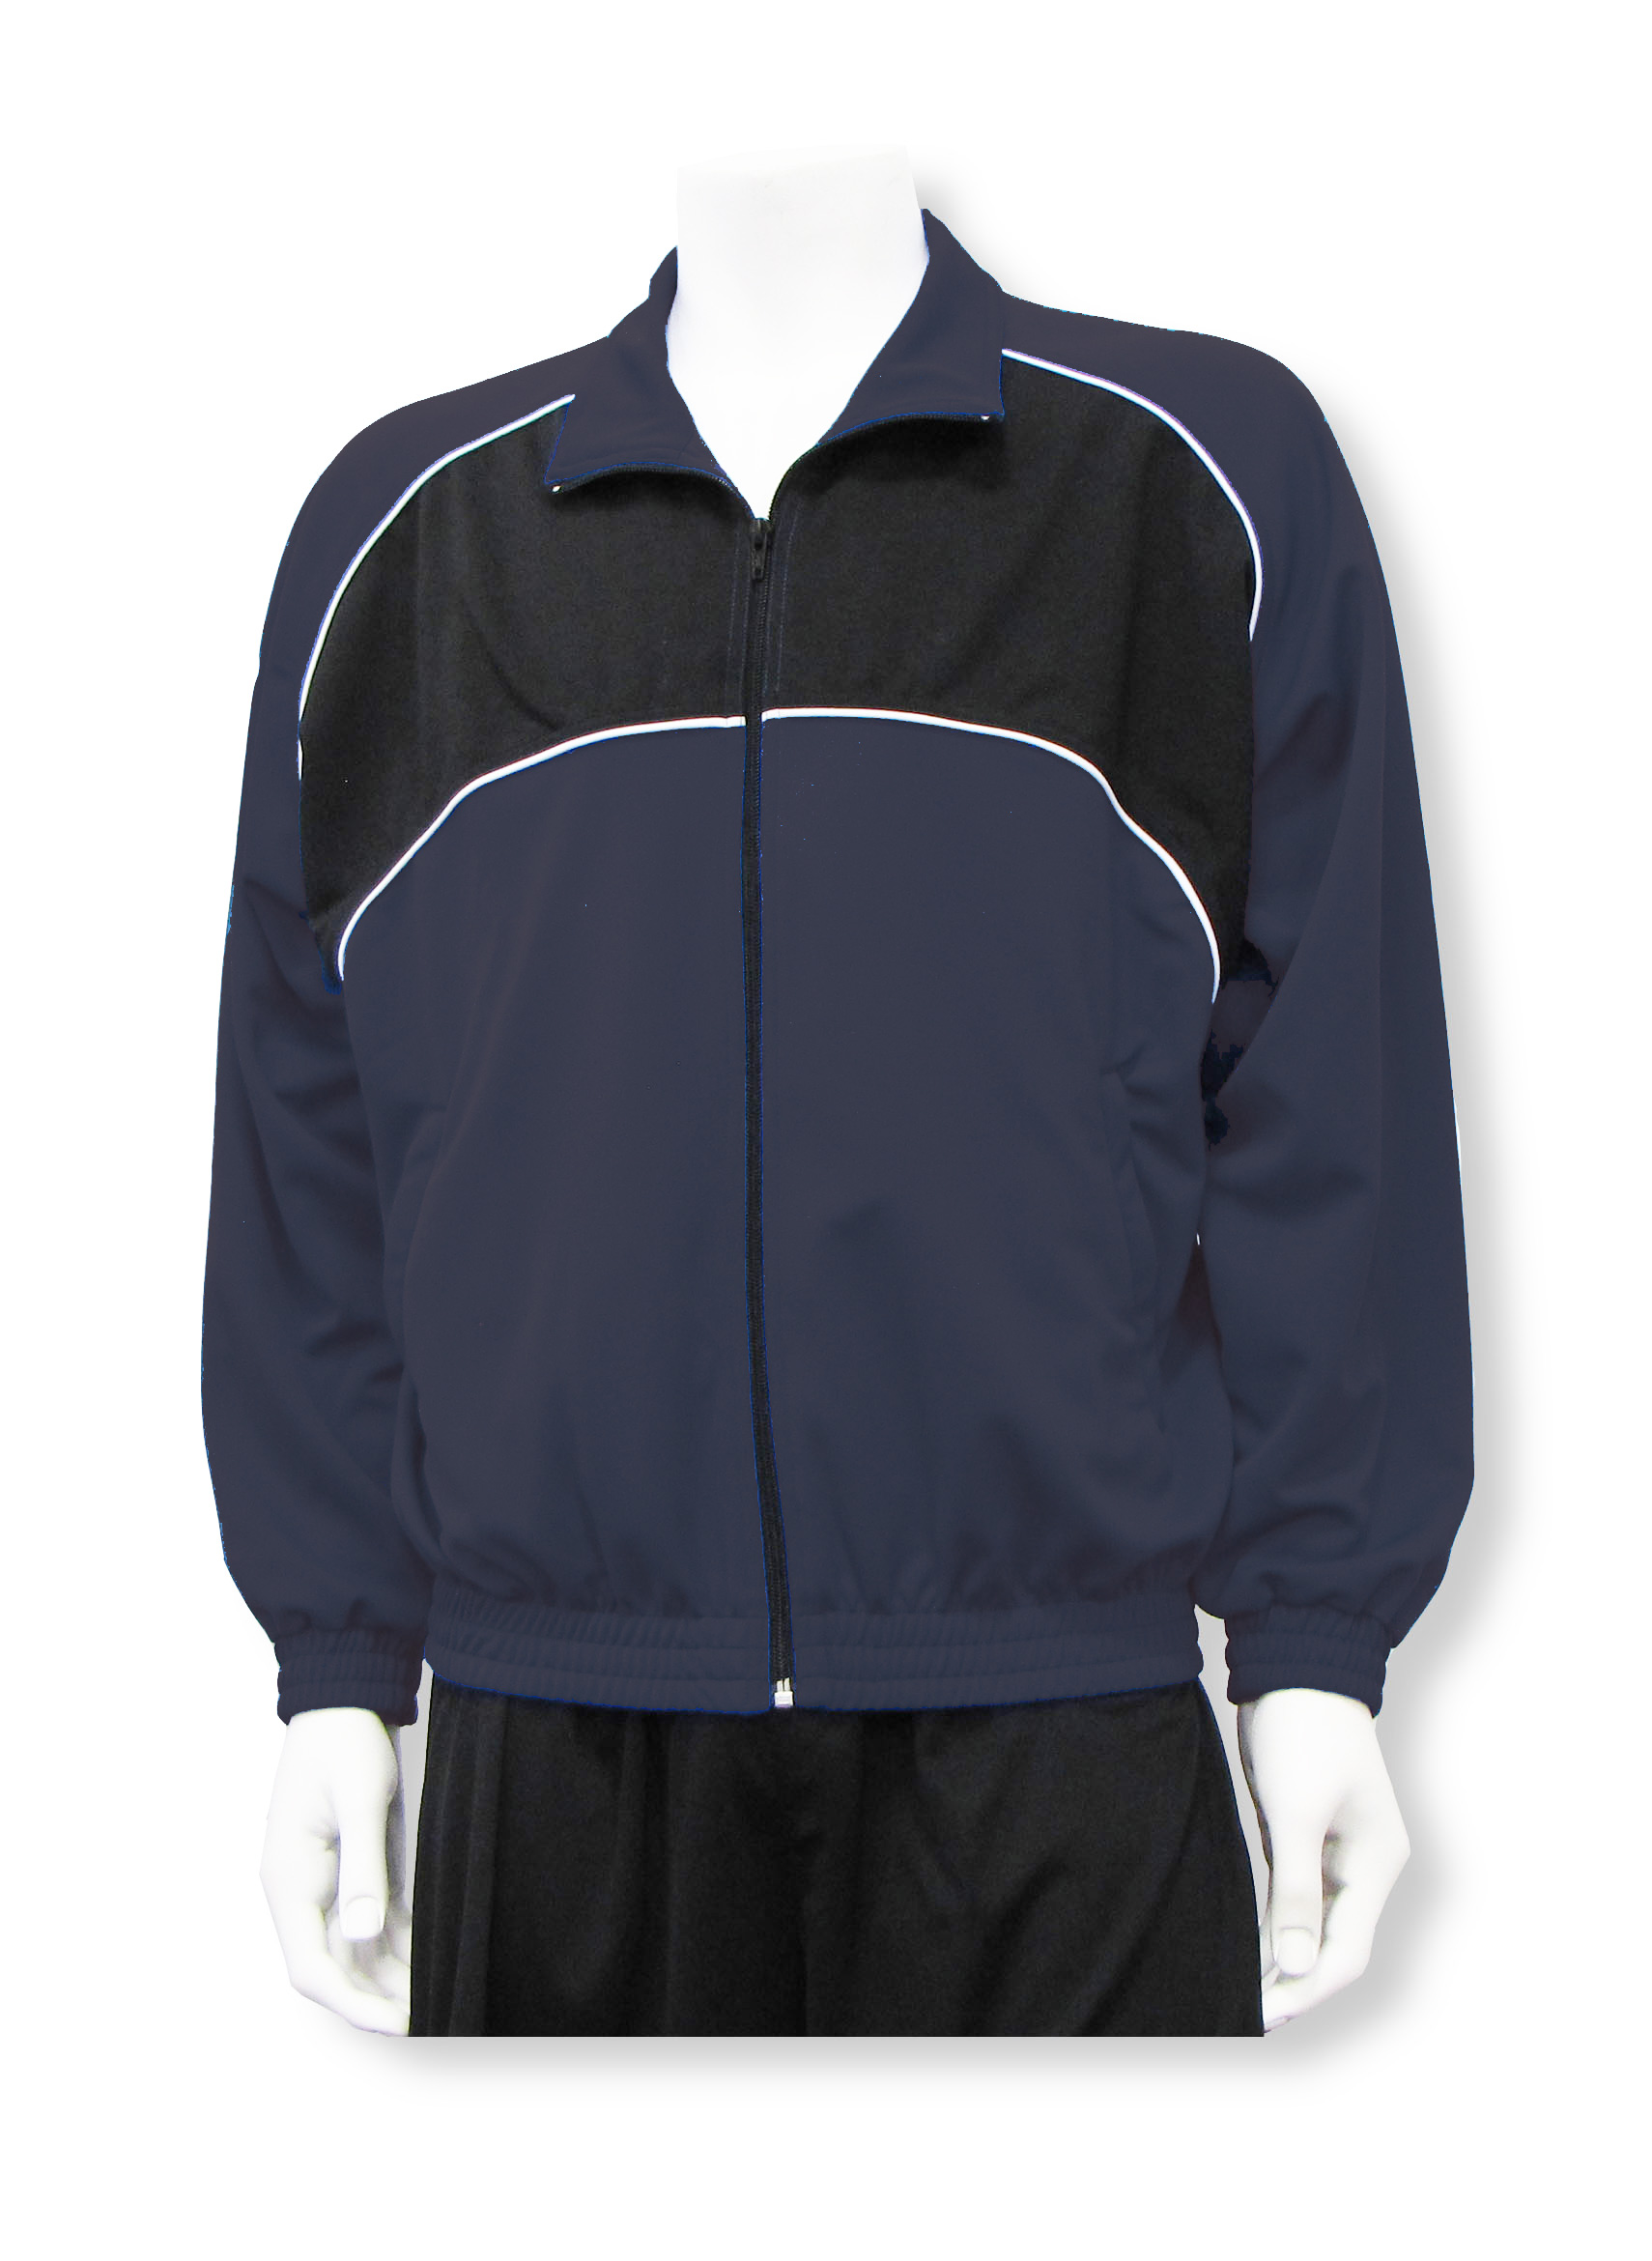 Crossfire soccer warmup jacket in navy/black by Code Four Athletics